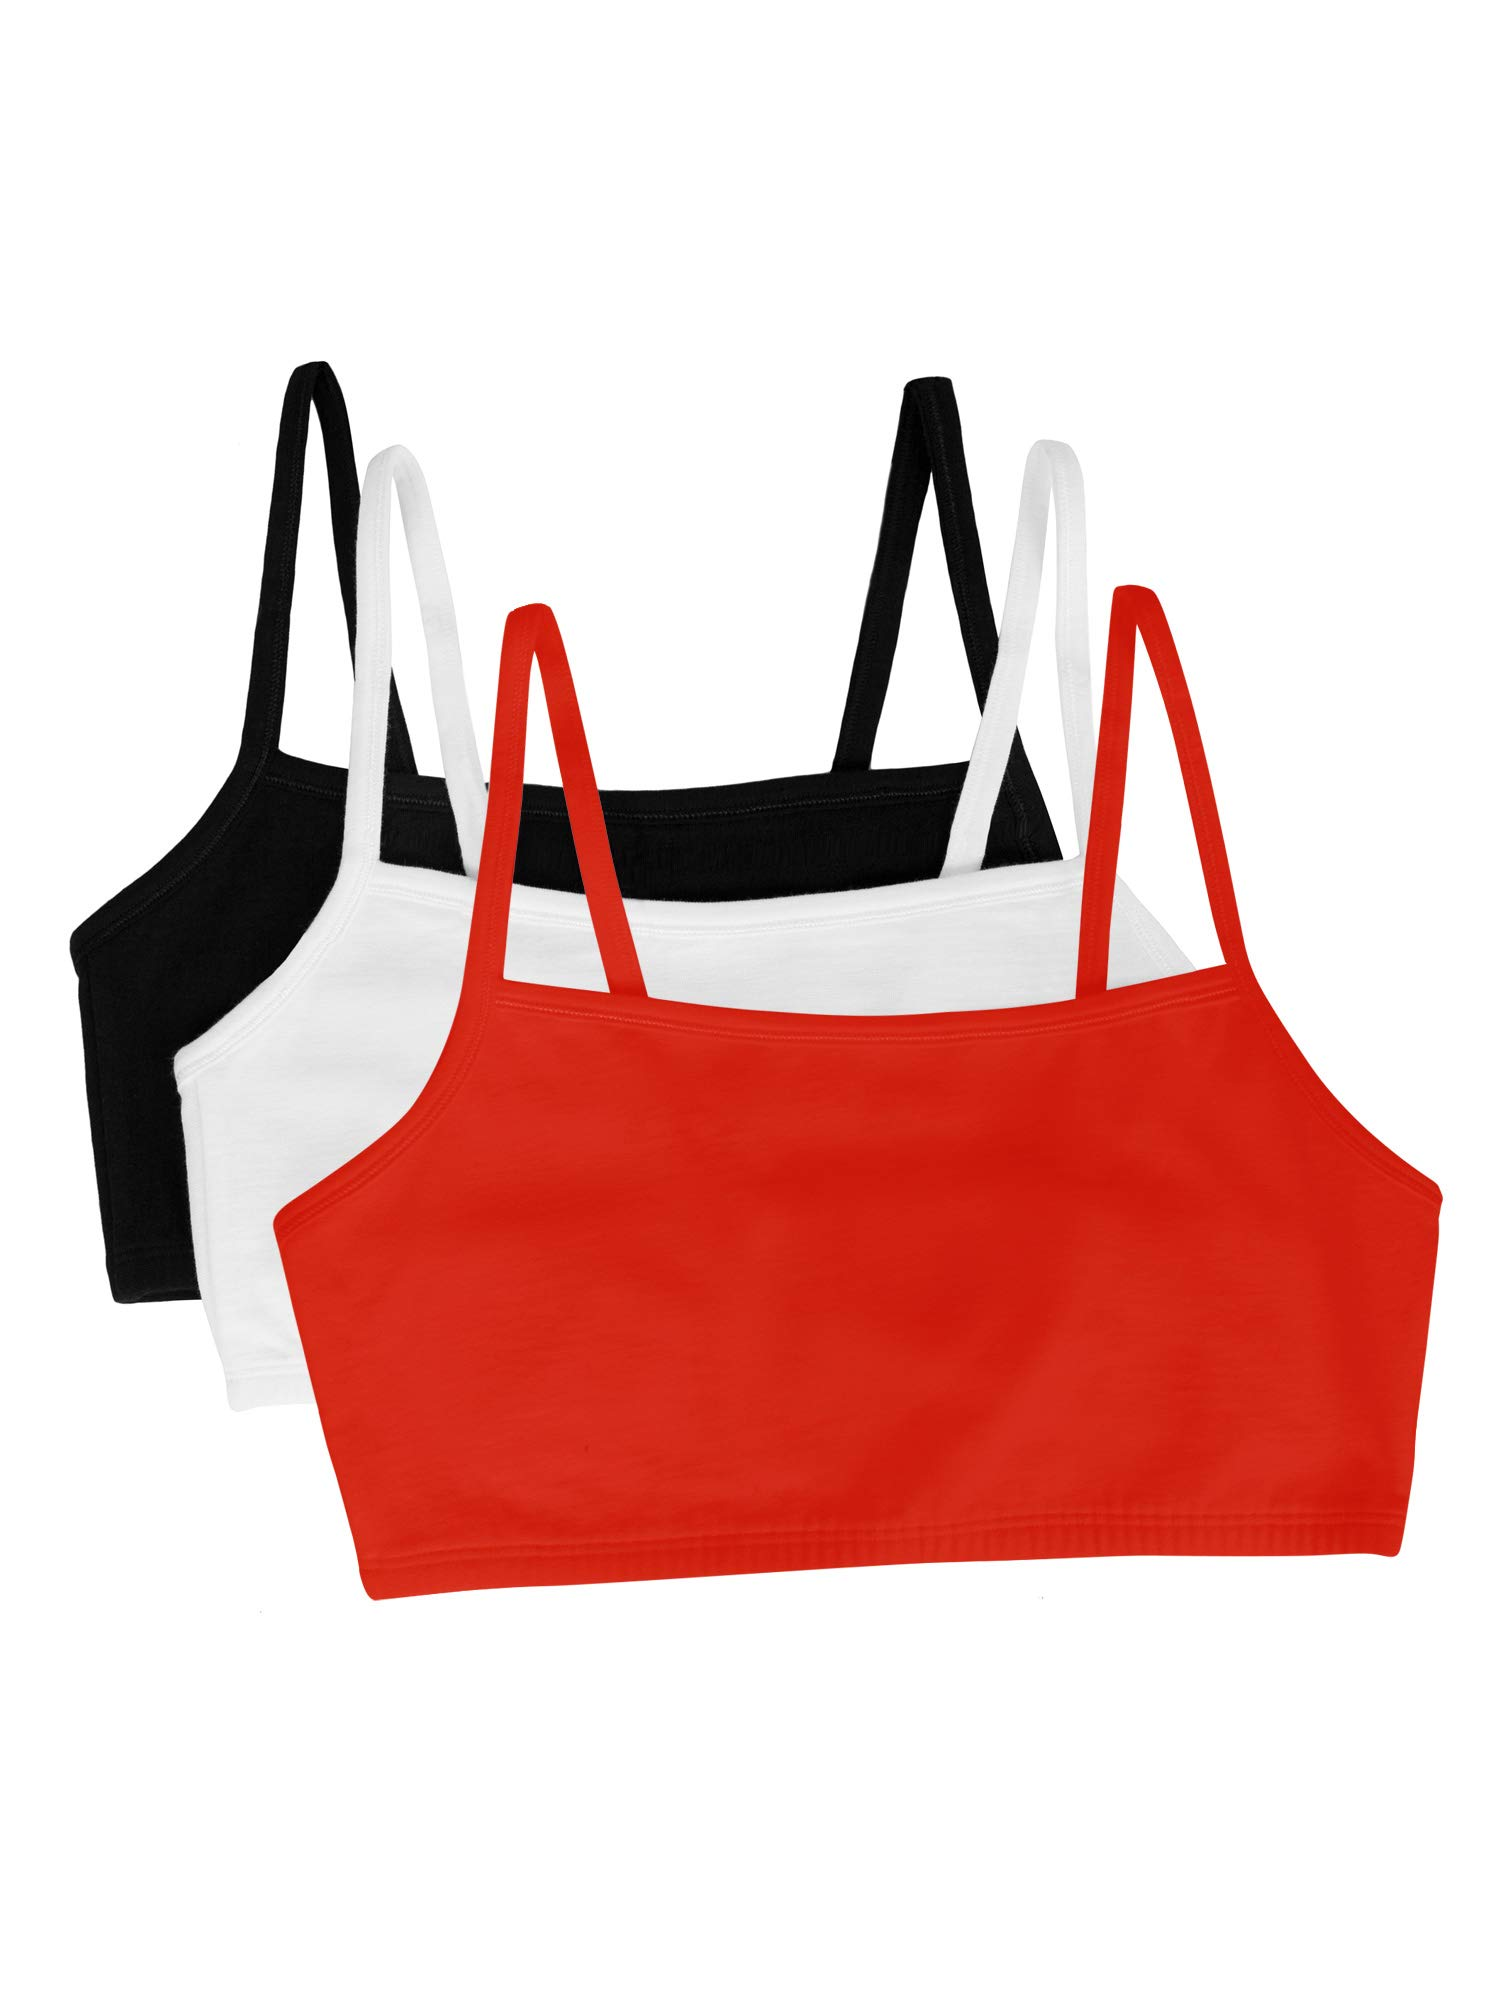 Fruit of the Loom womens Cotton Pullover Sport Bra, black/white/red hot 38 by Fruit of the Loom